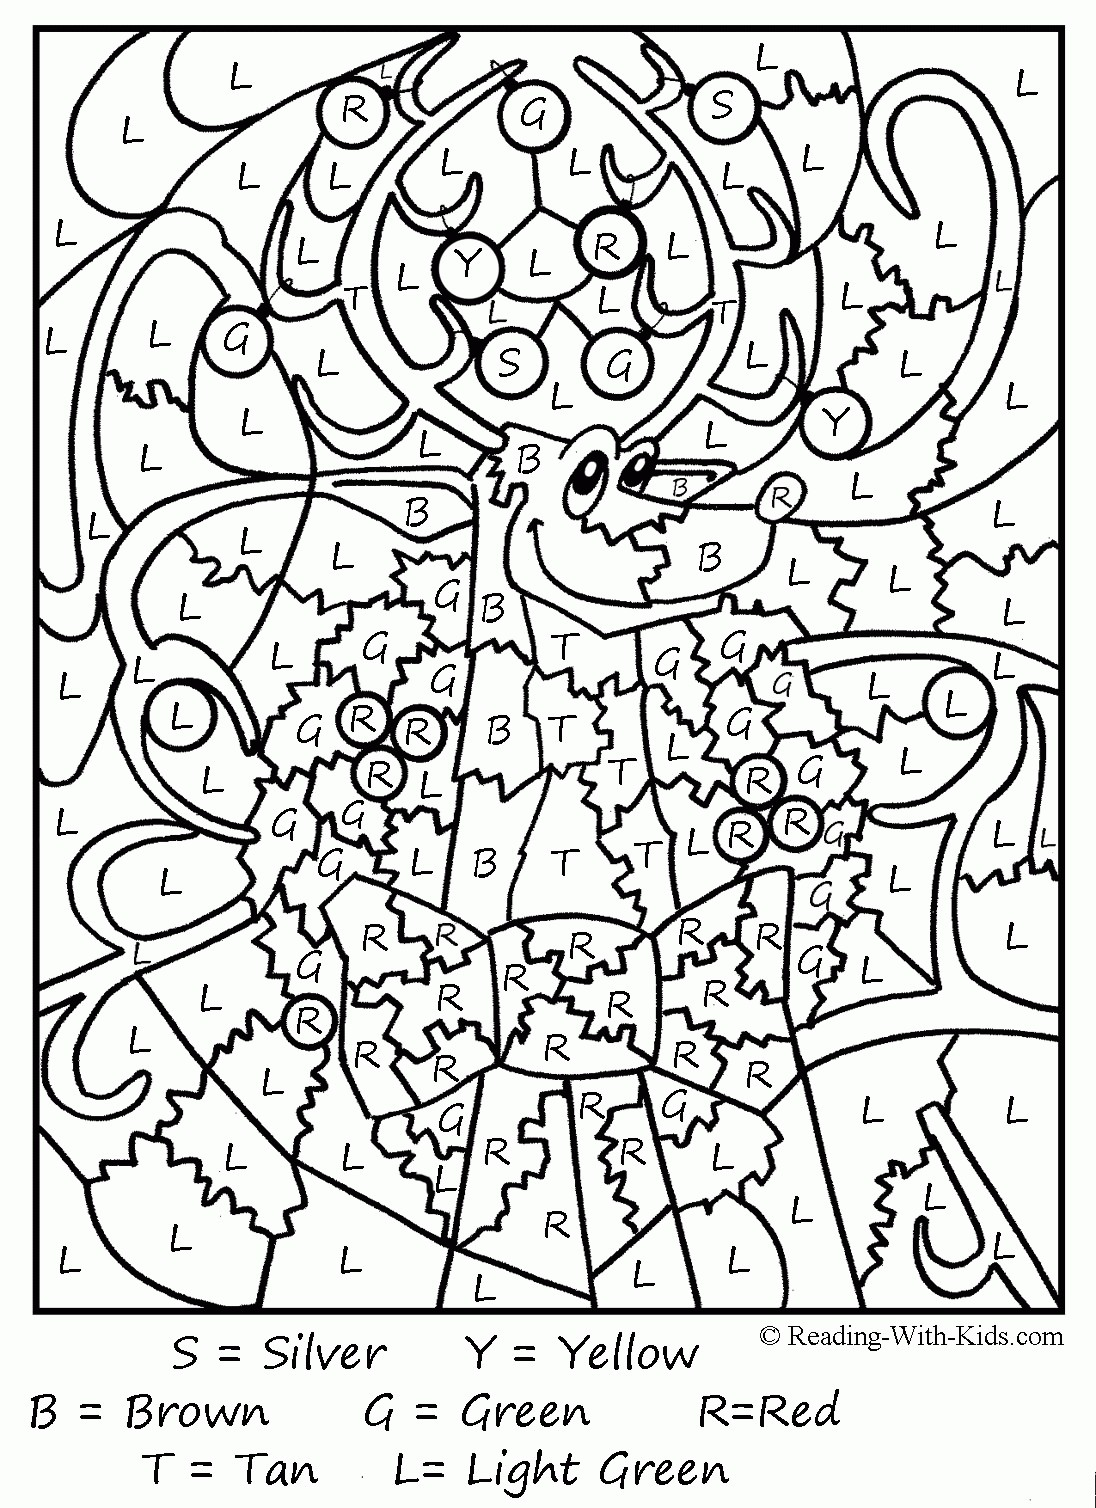 Christmas Coloring Pages Pre K With Kindergarten For Middle School Students